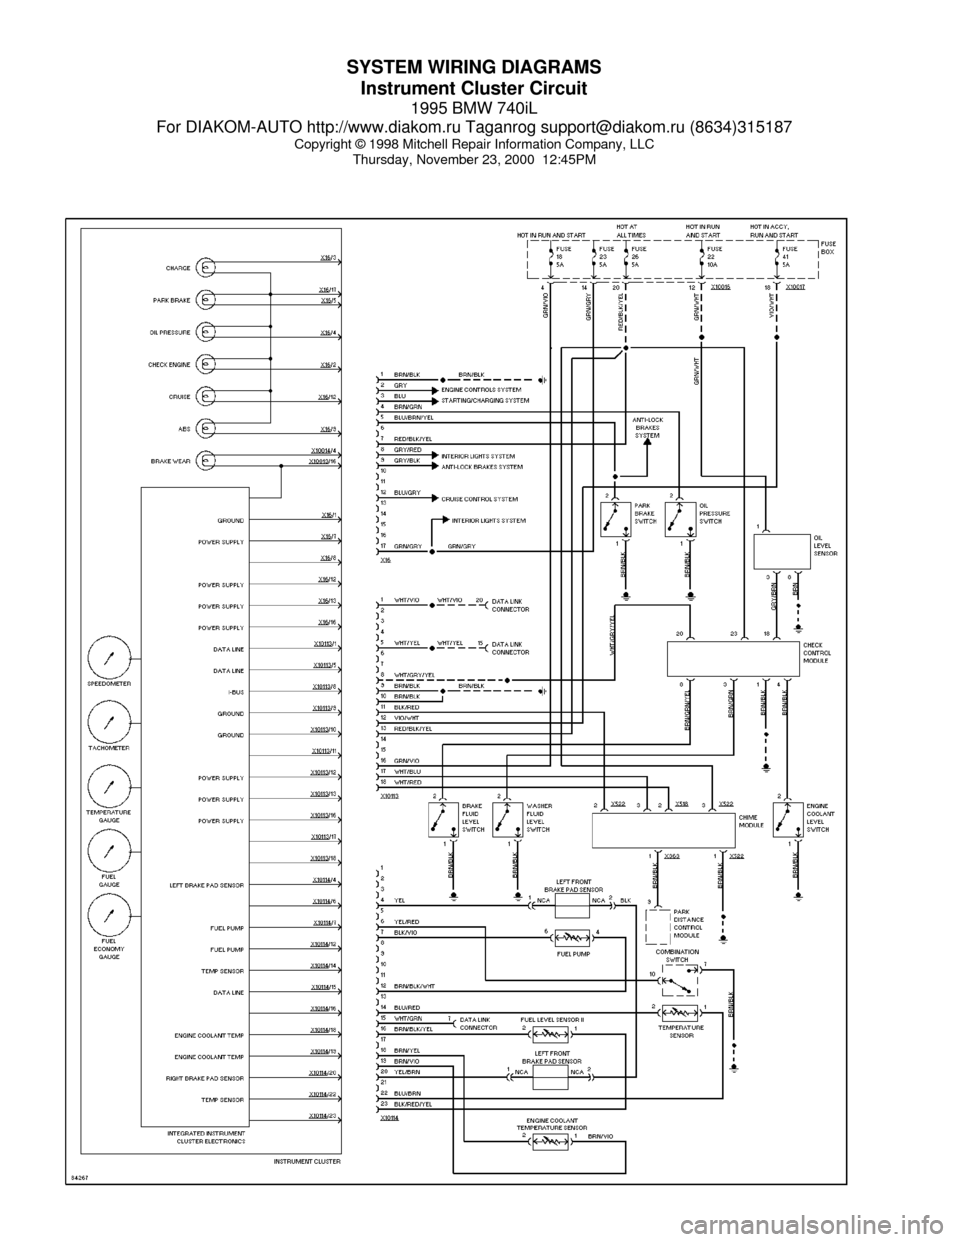 w960_2820 33 bmw 740il 1995 e38 system wiring diagrams Universal Wiper Motor Wiring Diagram at eliteediting.co